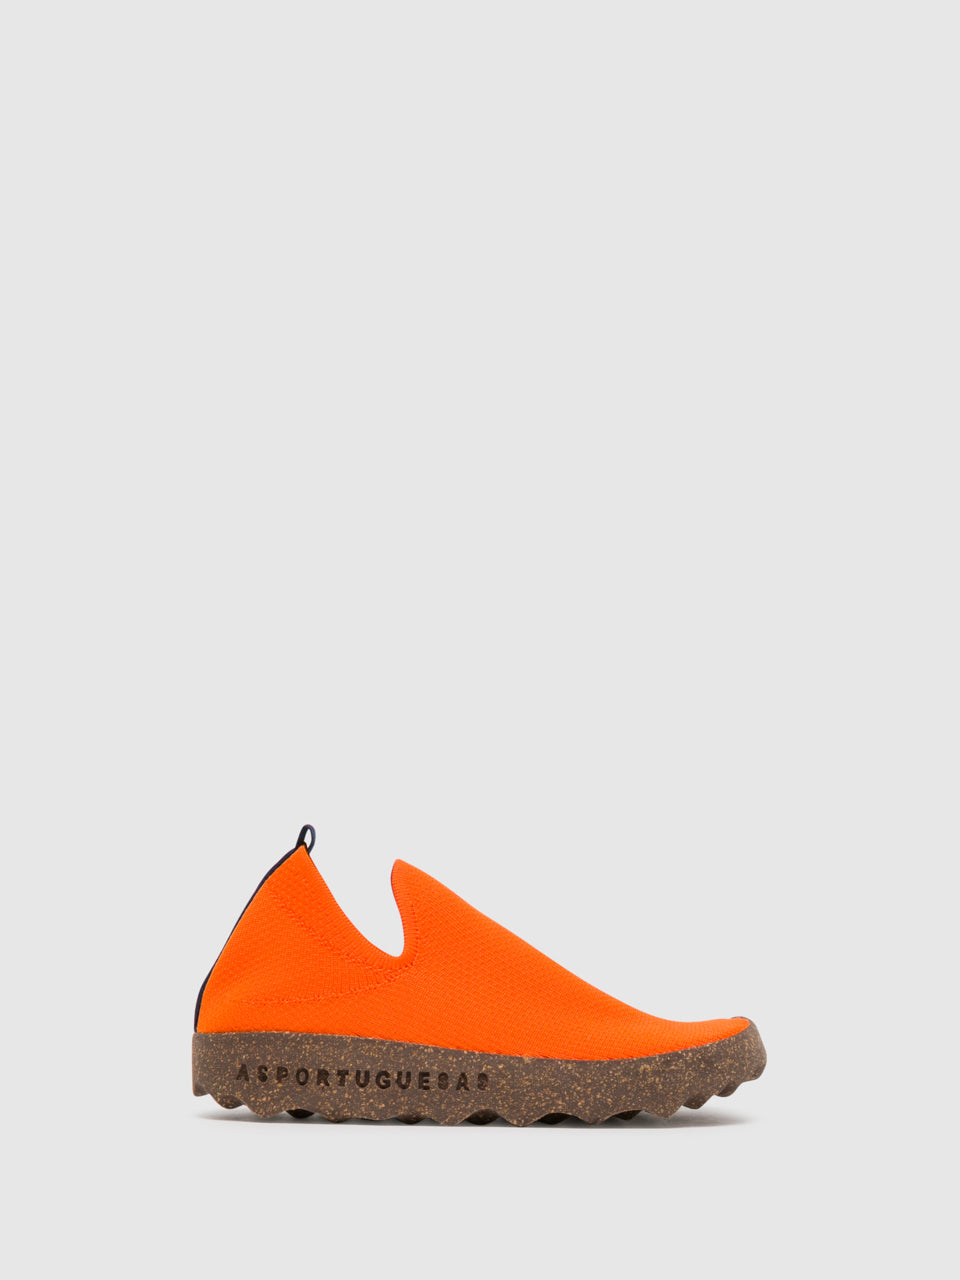 ASPORTUGUESAS Sneakers mit Elastikeinsätzen in Orange